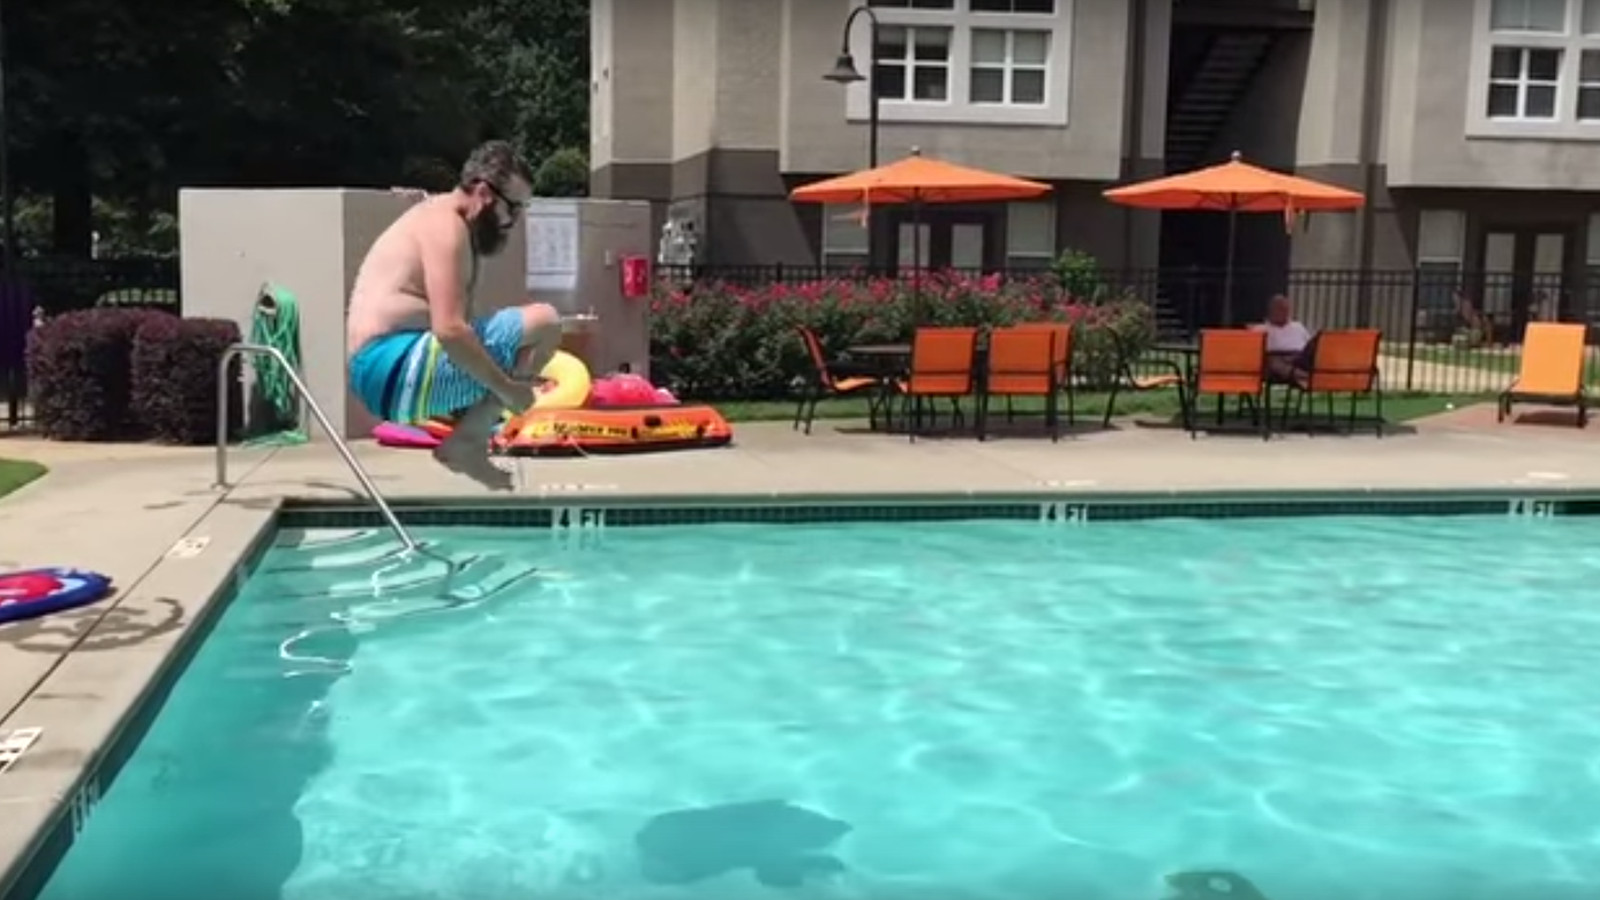 Trey Kerby 39 S Pool Jumping Documentary 39 The Art Of C Balls 39 Is A Cinematic Masterpiece And Should